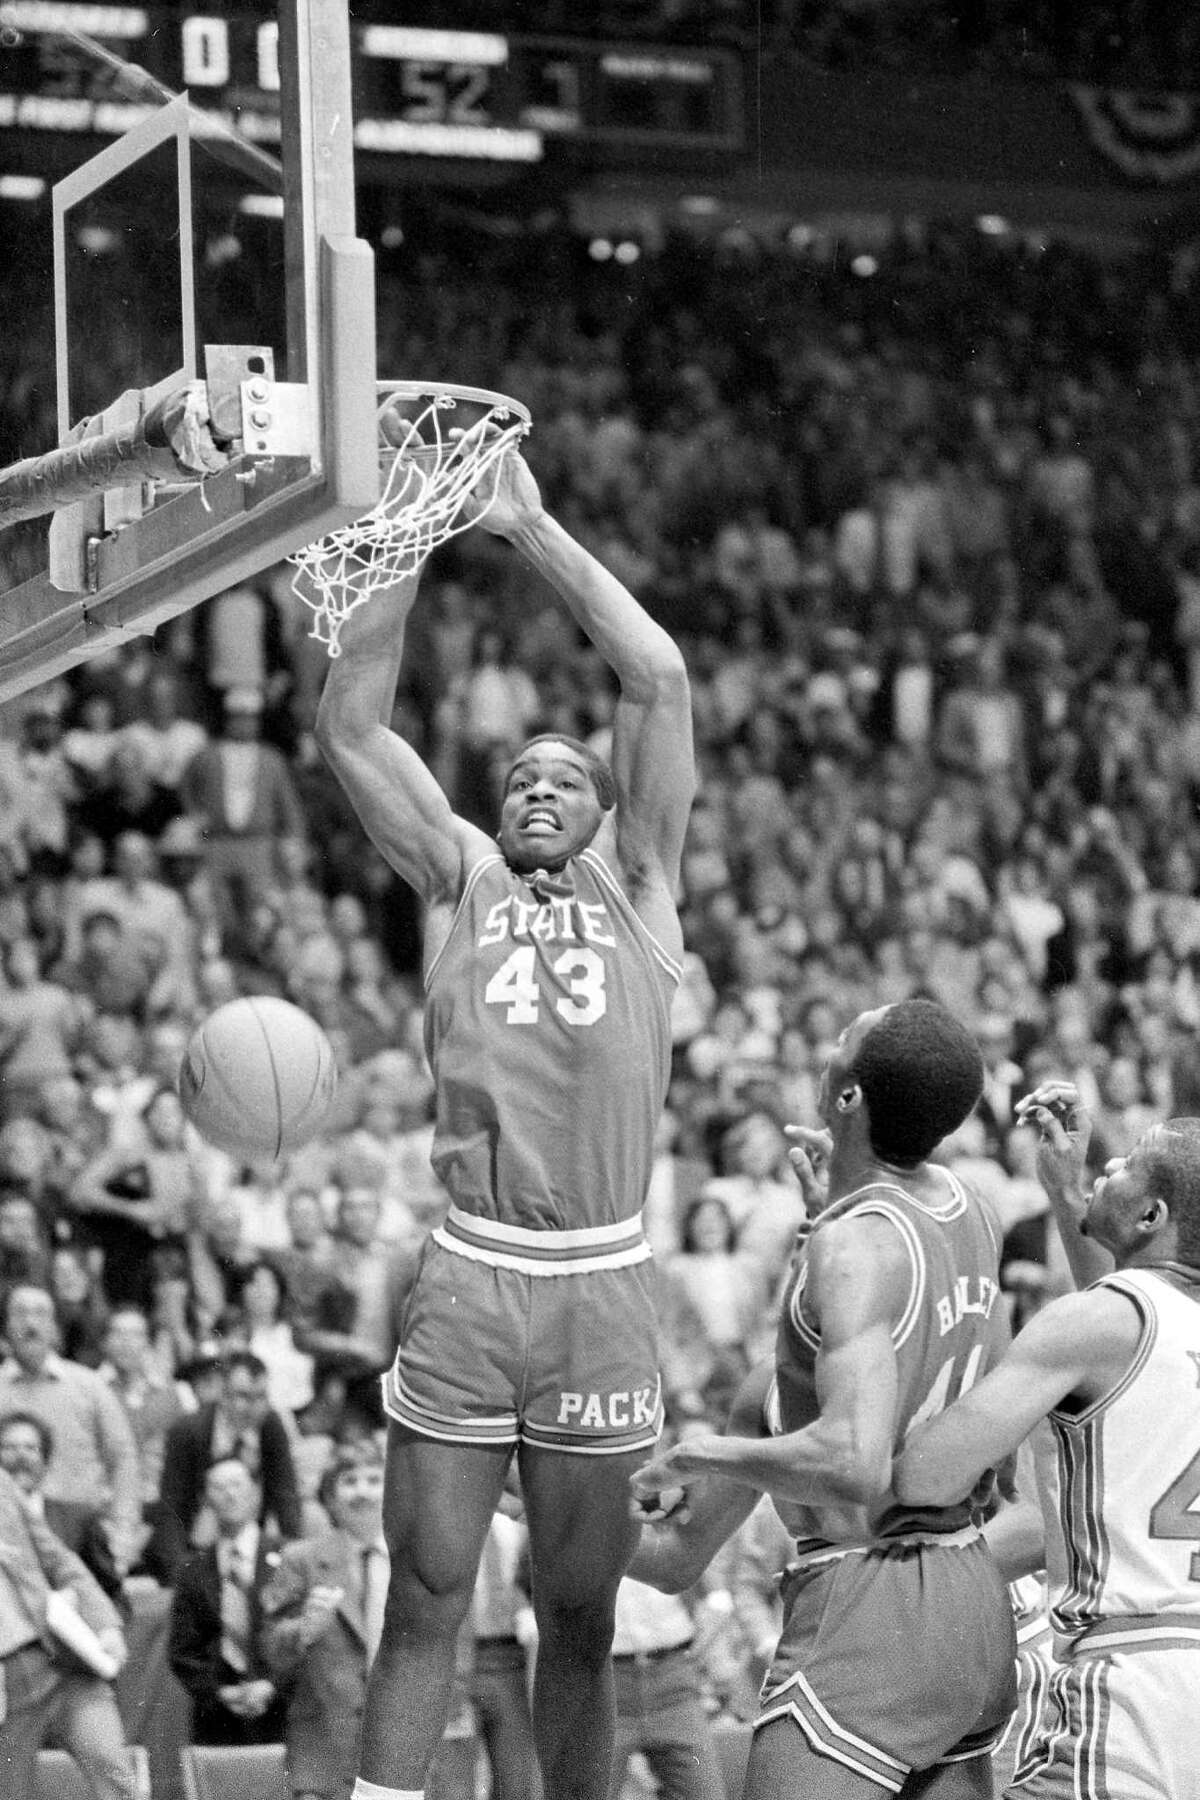 FILE - In this April 4, 1983, file photo, North Carolina State's Lorenzo Charles (43) dunks the ball to give N.C. State a 54-52 win over Houston in the NCAA Final Four college basketball championship game in Albuquerque, N.M. The airball-turned-buzzer-beating dunk stunned top-ranked Houston. (AP Photo/File)